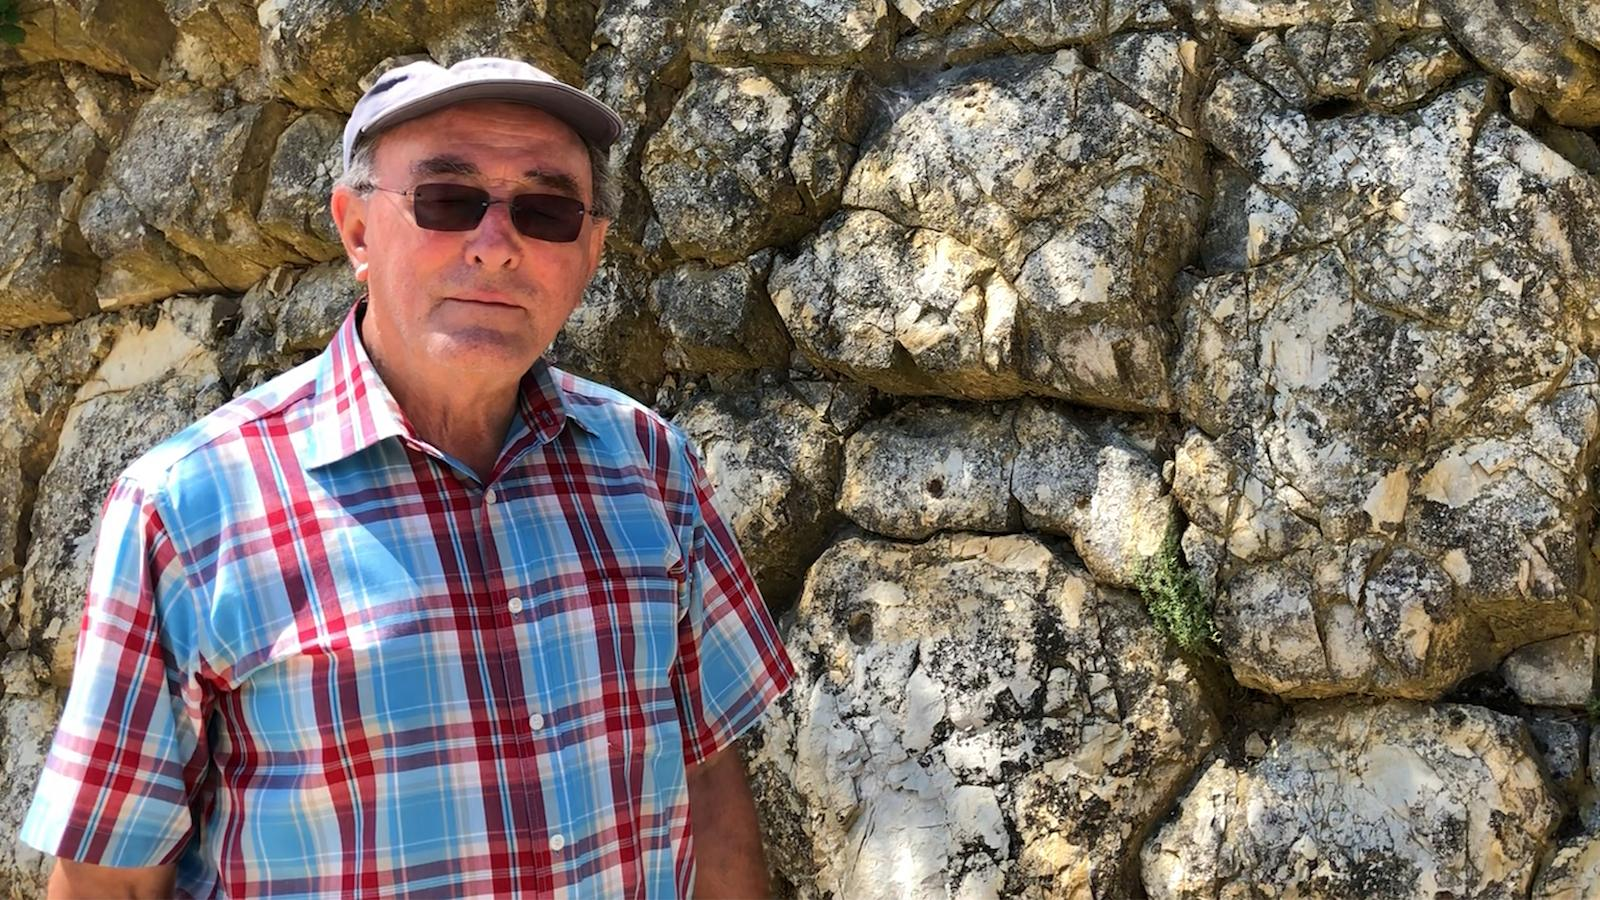 Geologist Georges Truc gives a personal tour of Gigondas, from the Jurassic to today.